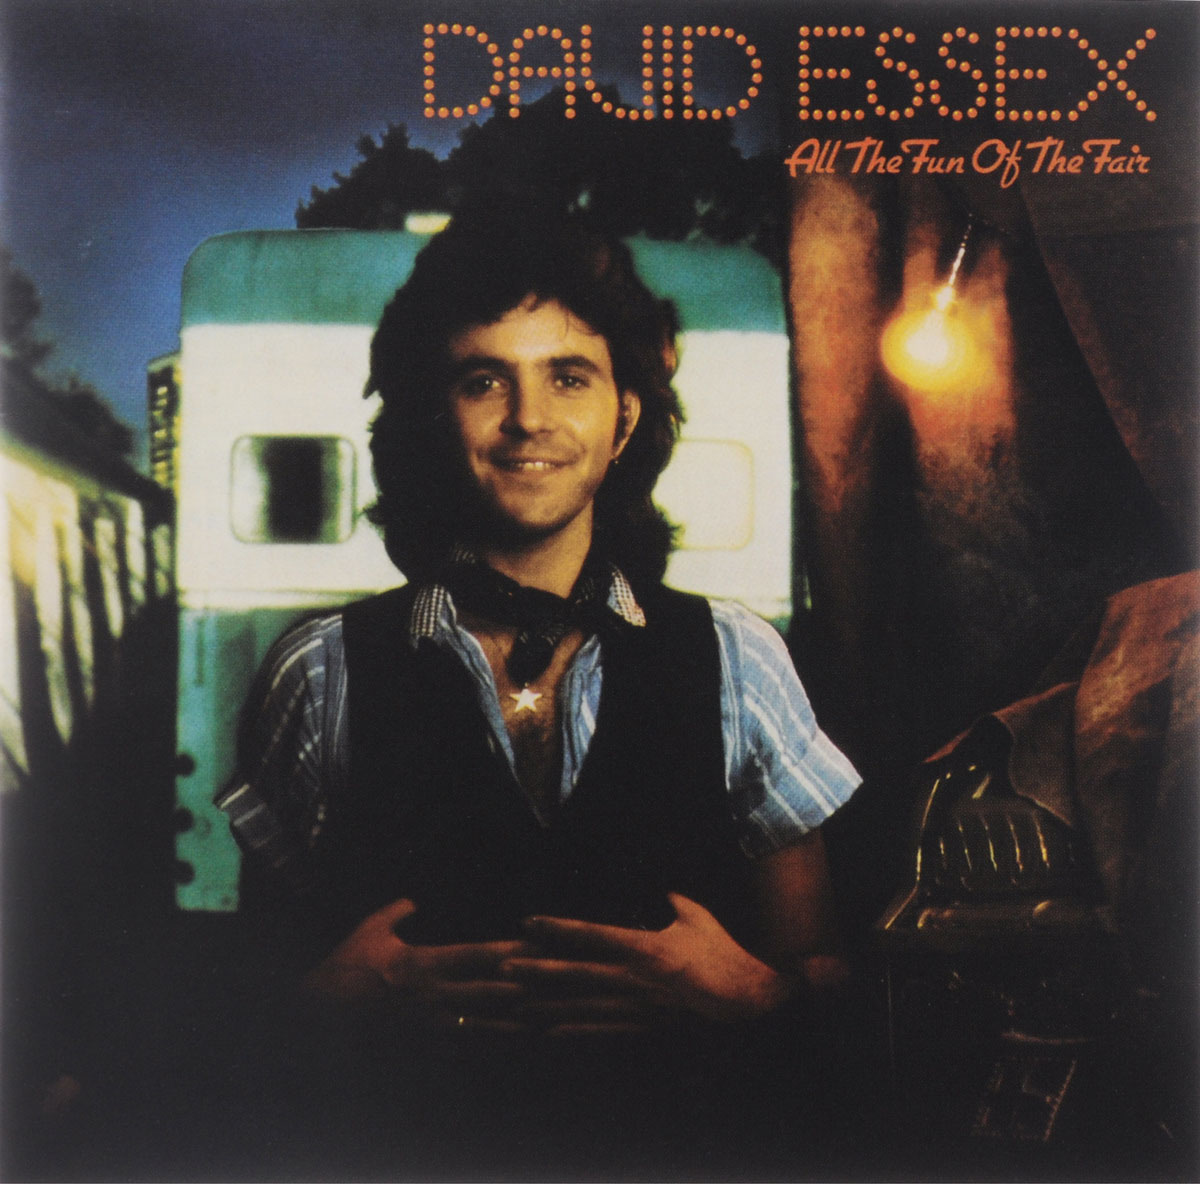 Дэвид Эссекс David Essex. All The Fun Of The Fair бейсболки atributika